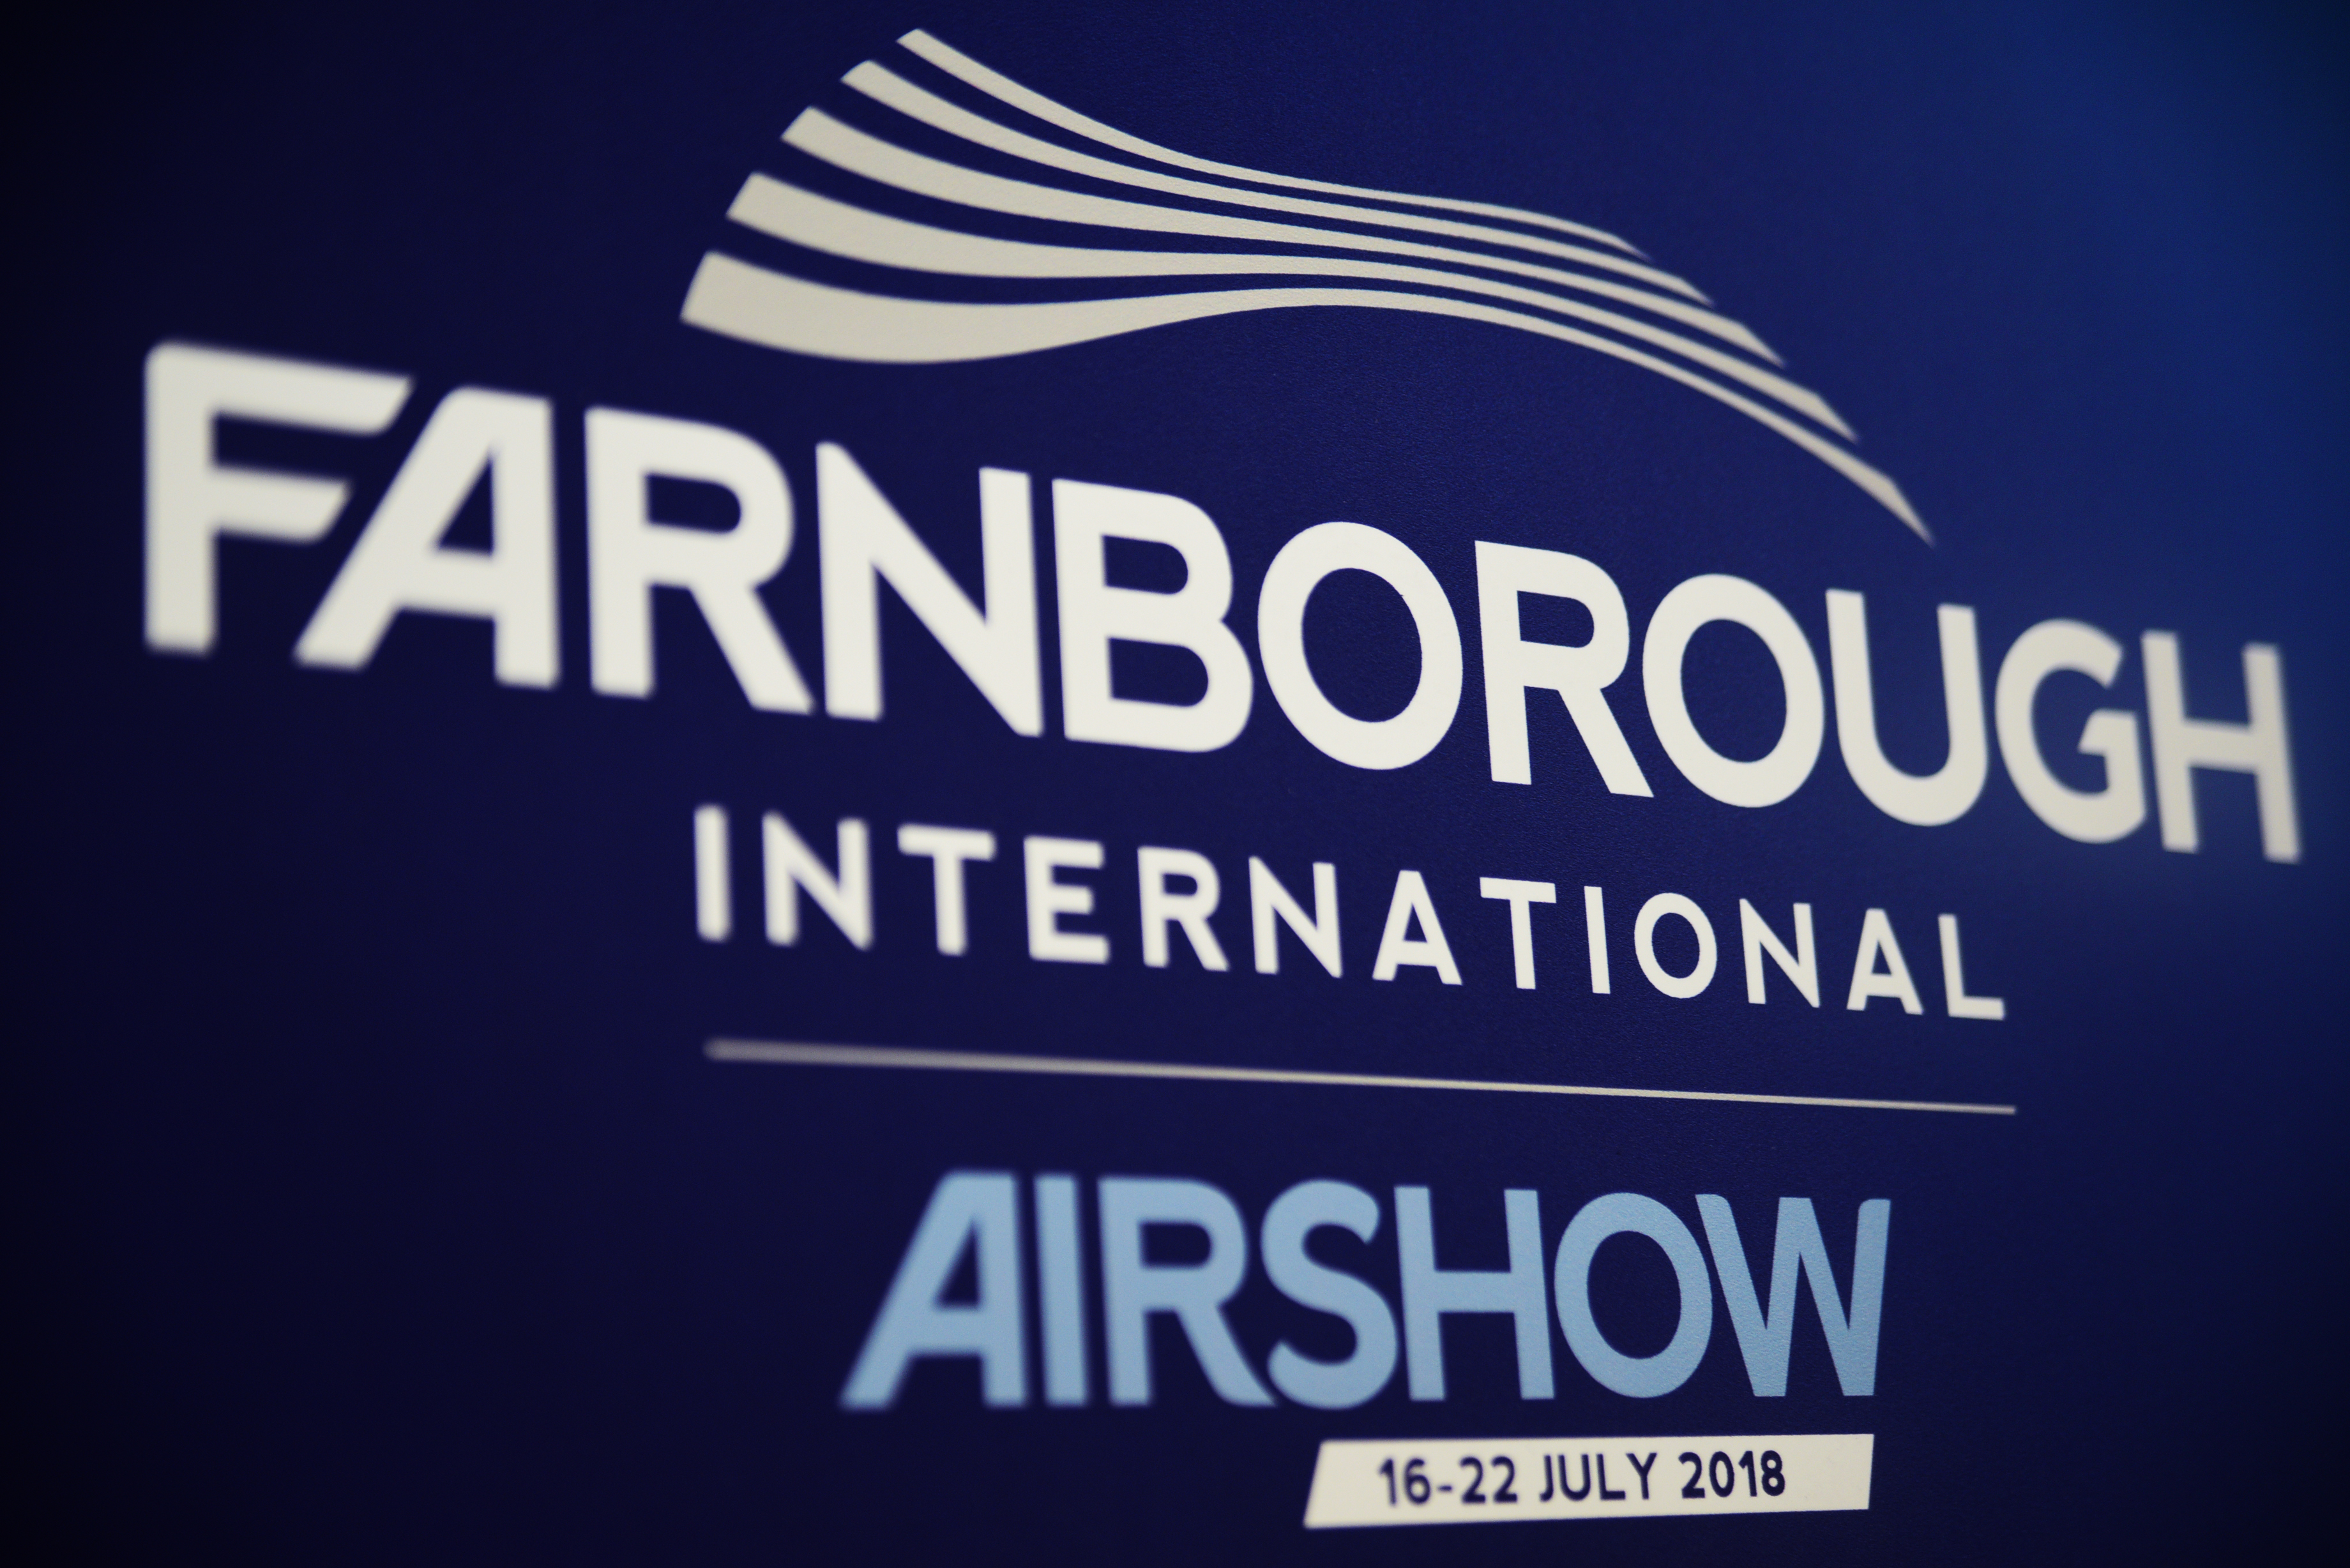 The Farnborough Air Show